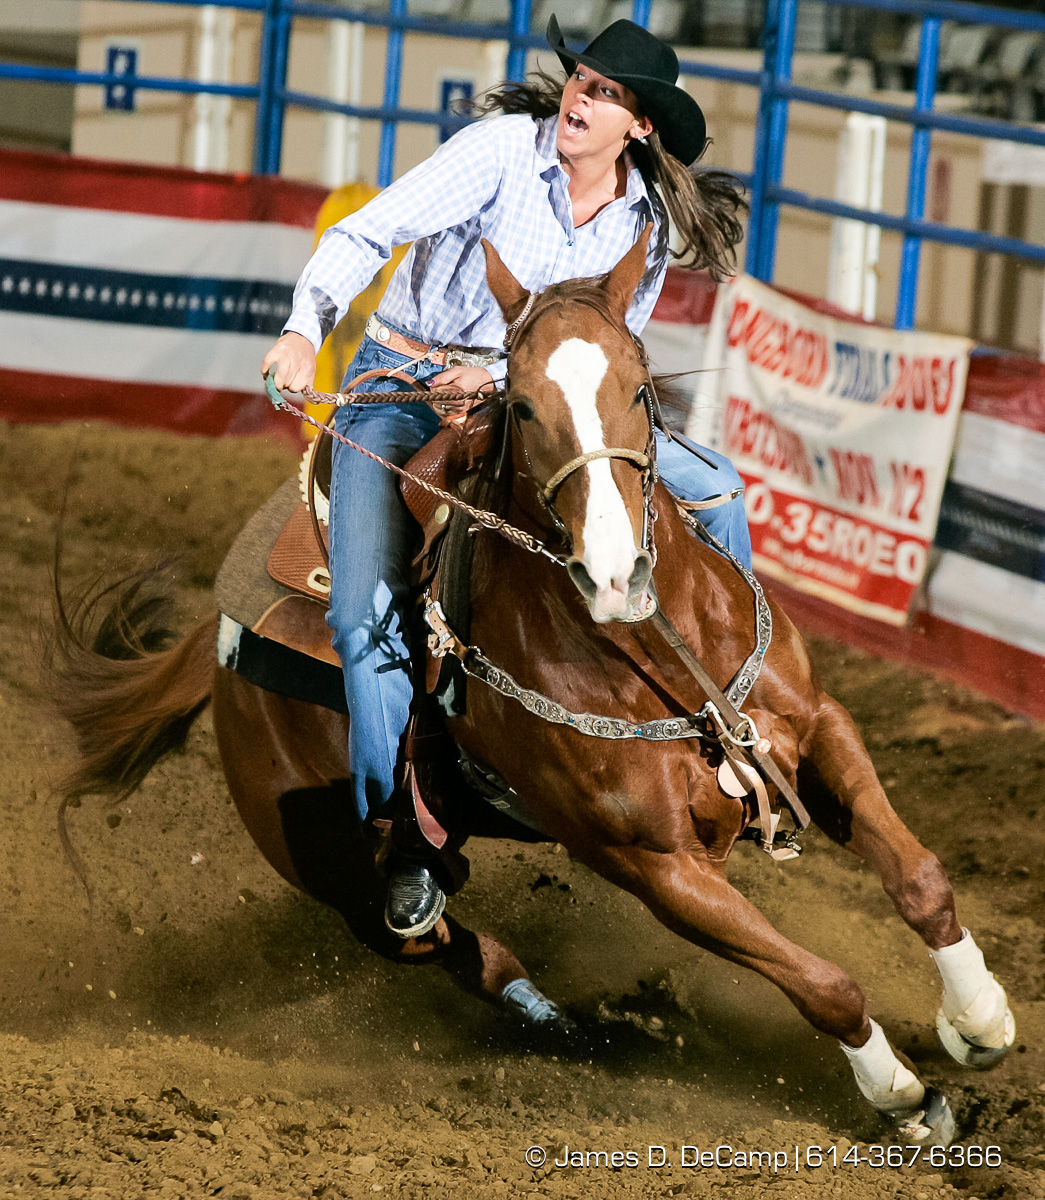 Ashley Bowers, Kewanee, IL, makes her way around the Cowgirls Barrel Racing course during Thursday February 3, 2005 Slack competition in the Longhorn World Championship Rodeo being held all weekend at the Ohio Expo Center. (© James D. DeCamp | http://www.JamesDeCamp.com | 614-367-6366) [Photographed with Canon 1D MkII cameras in RAW mode with L series lenses]